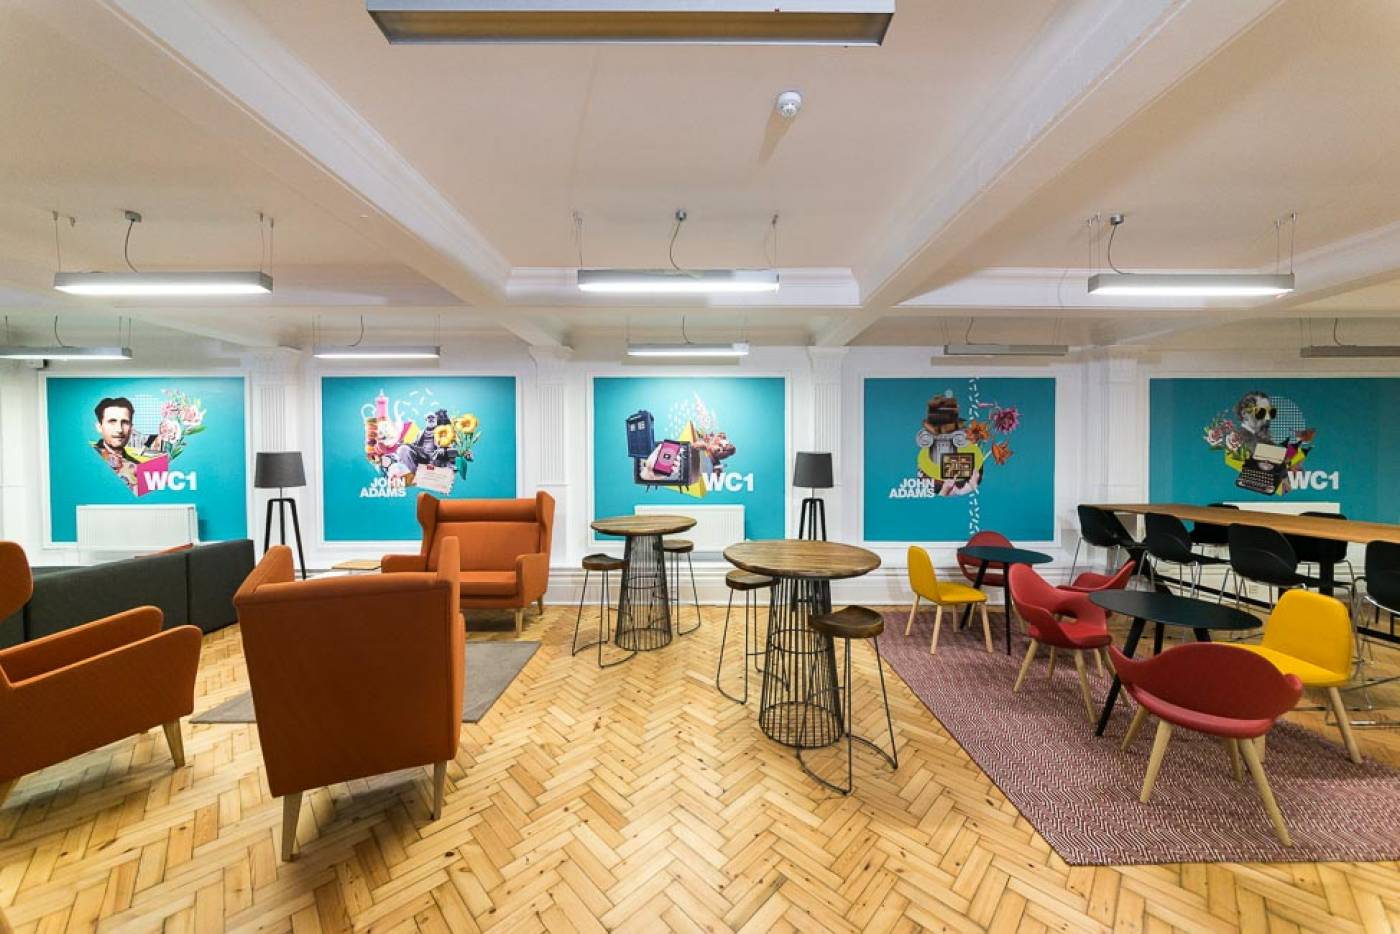 Endsleigh Gardens Ucl Accommodation Ucl London S